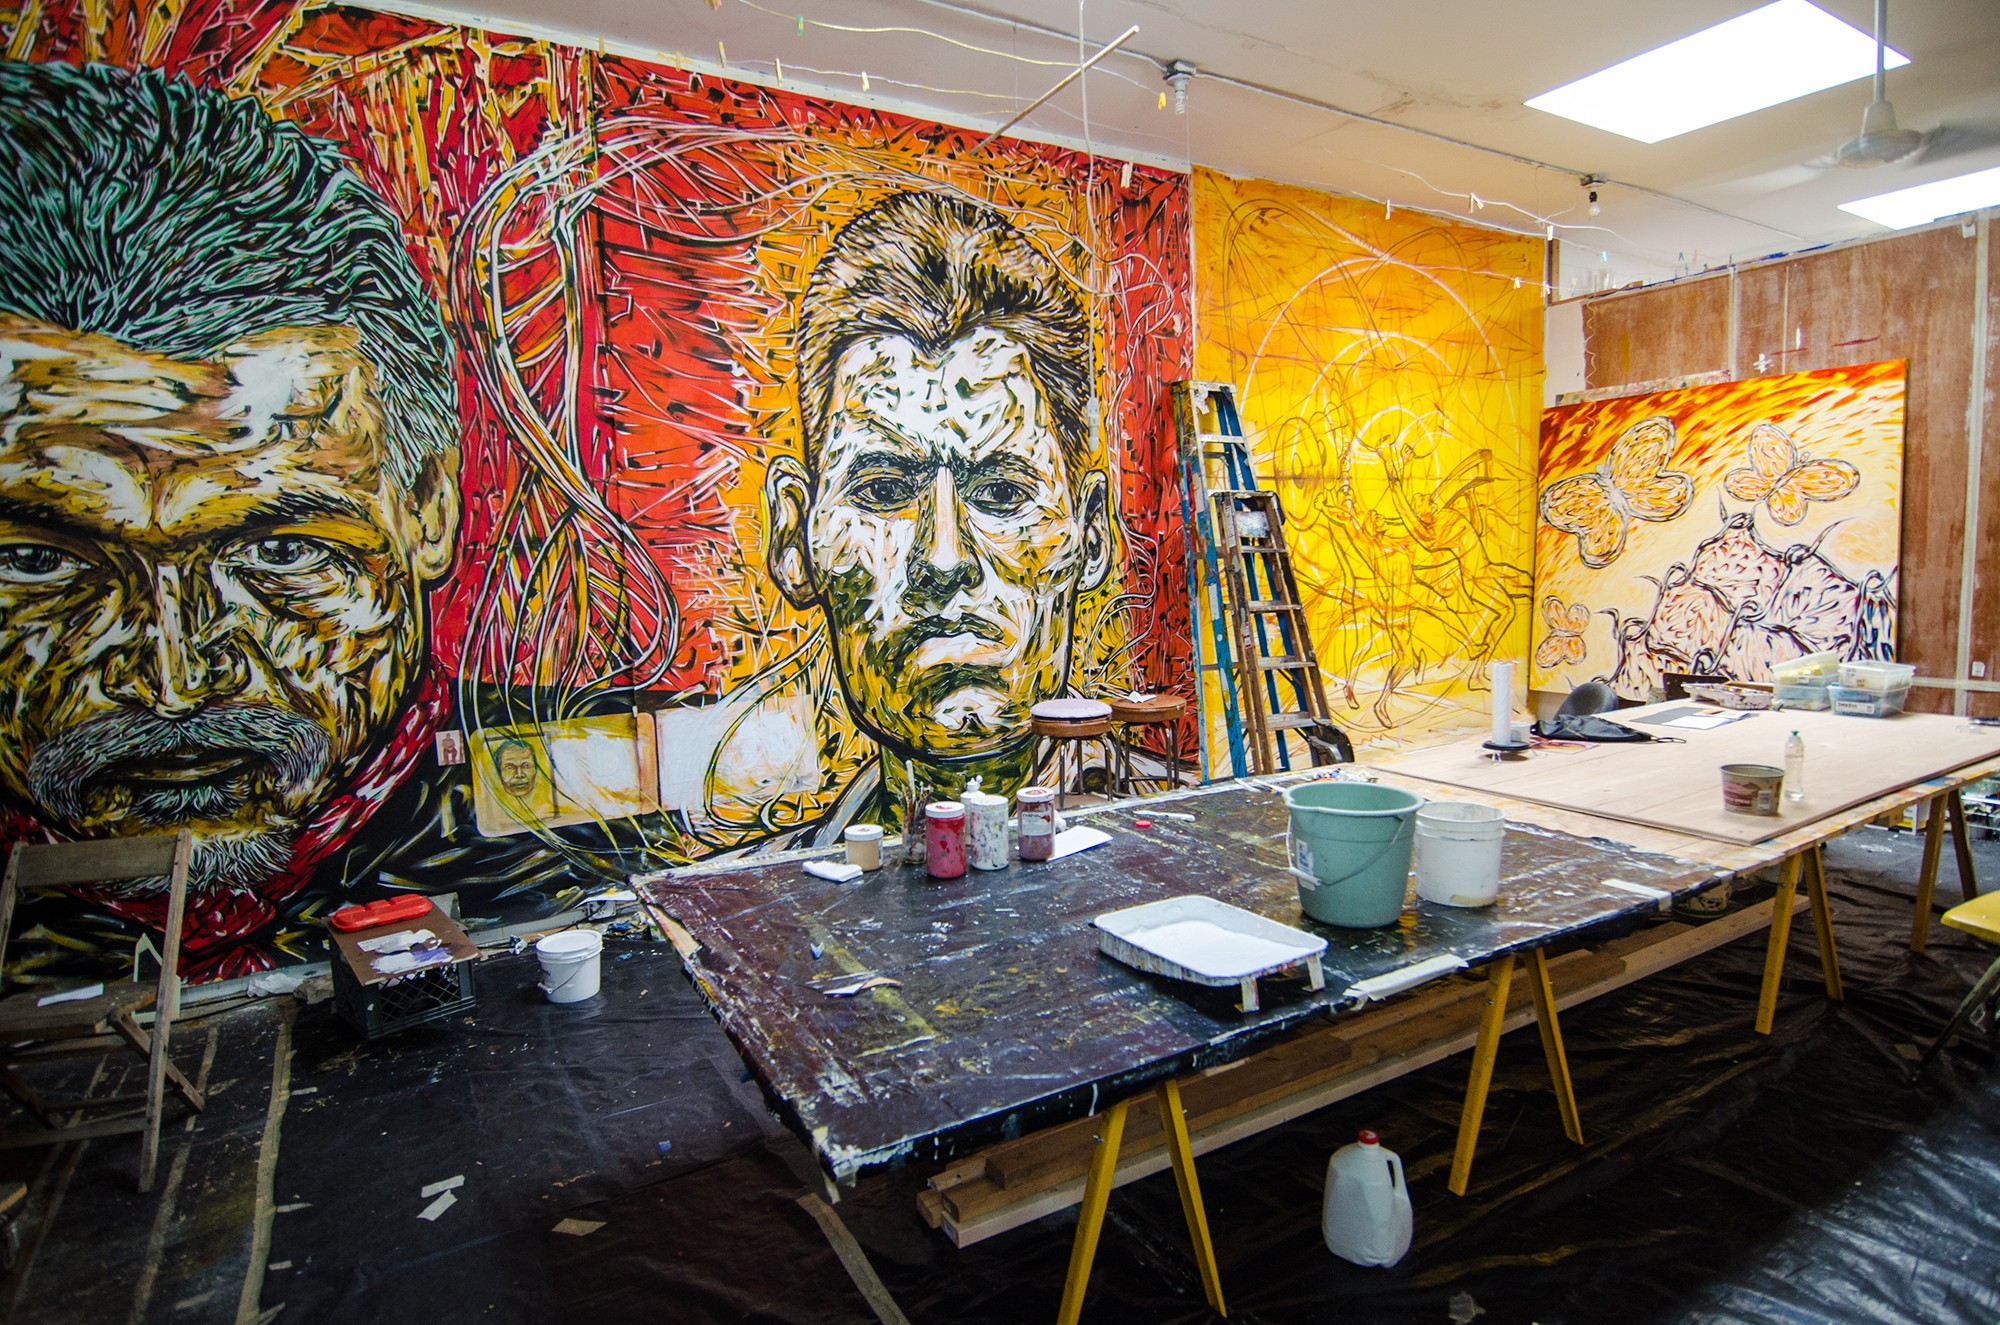 Inside his studio, Hector Duarte paints and stores some of his works of art (courtesy of Eric Allix Rogers).